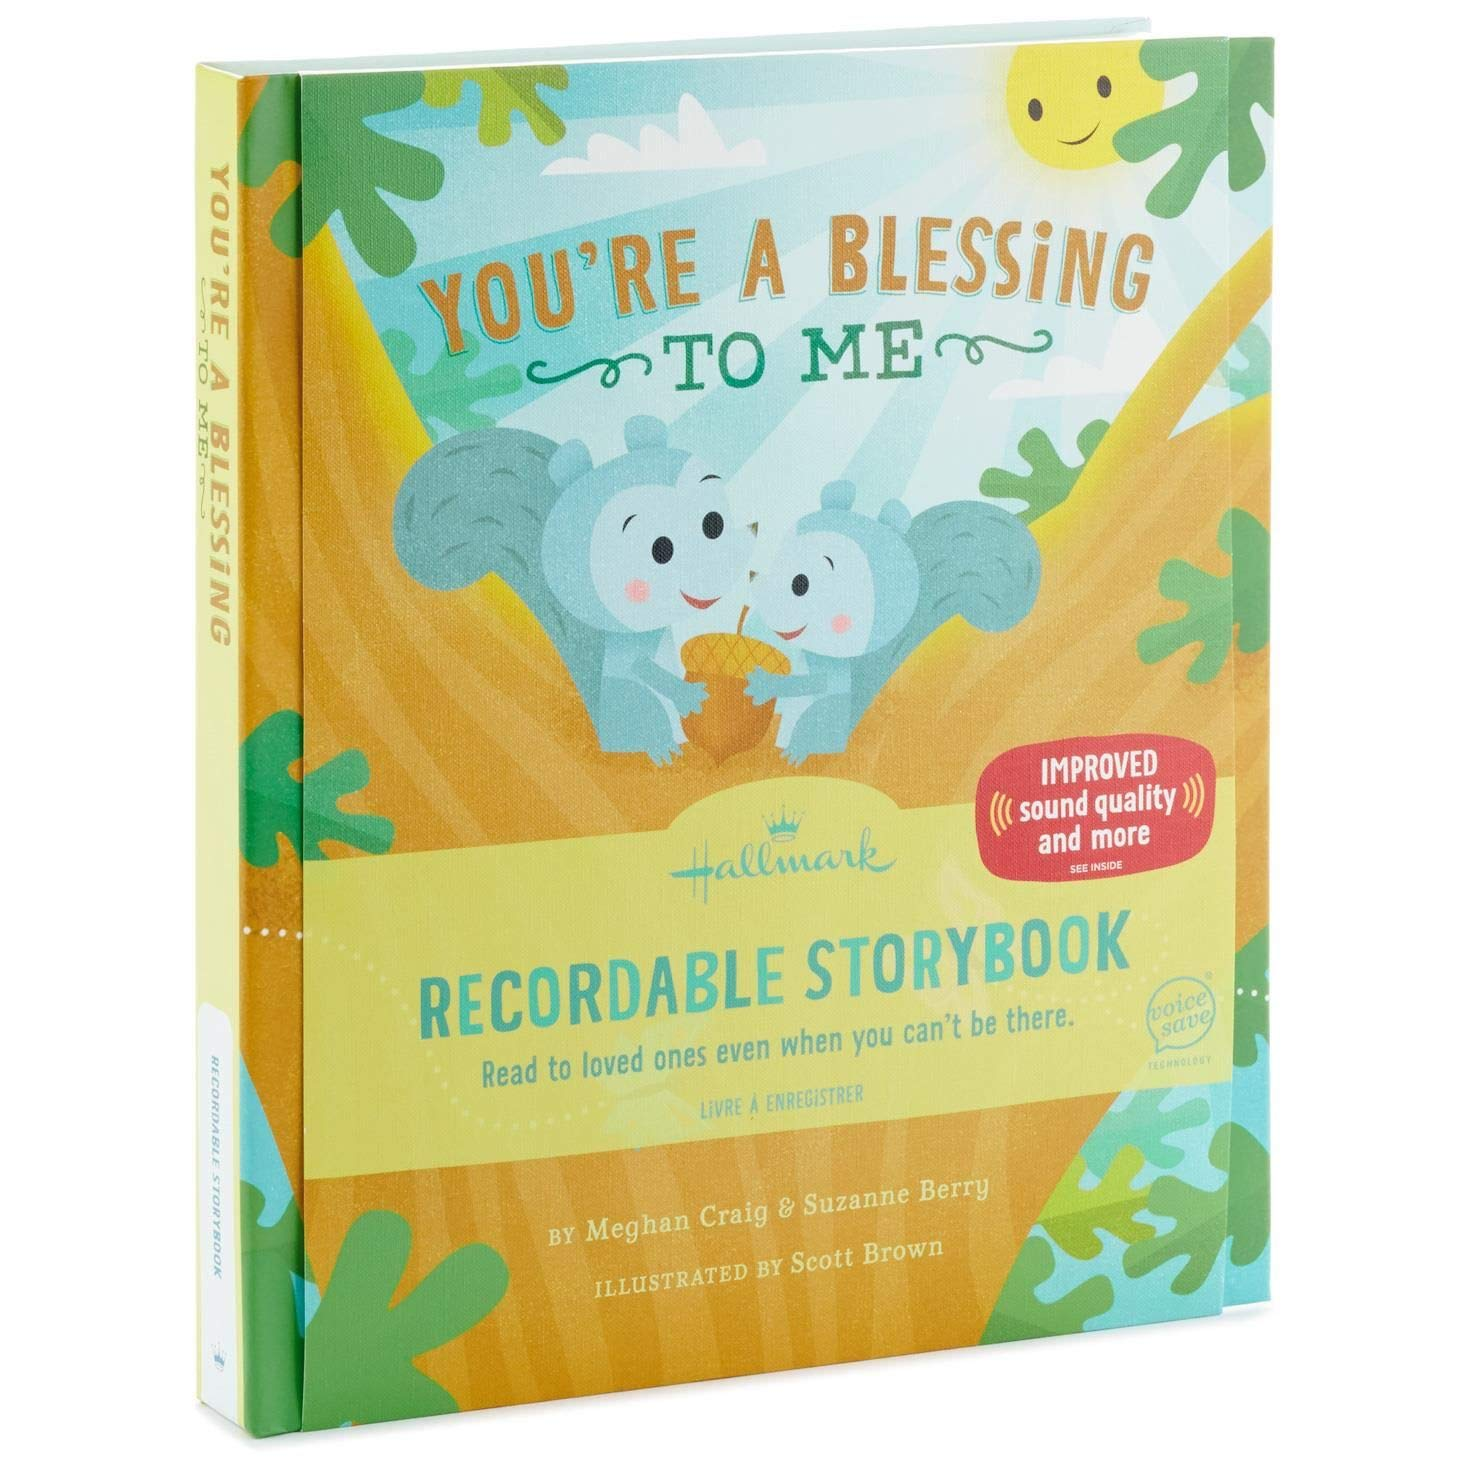 Hallmark You're a Blessing to Me Recordable Storybook Recordable Storybooks Religious Juvenile Nonfiction